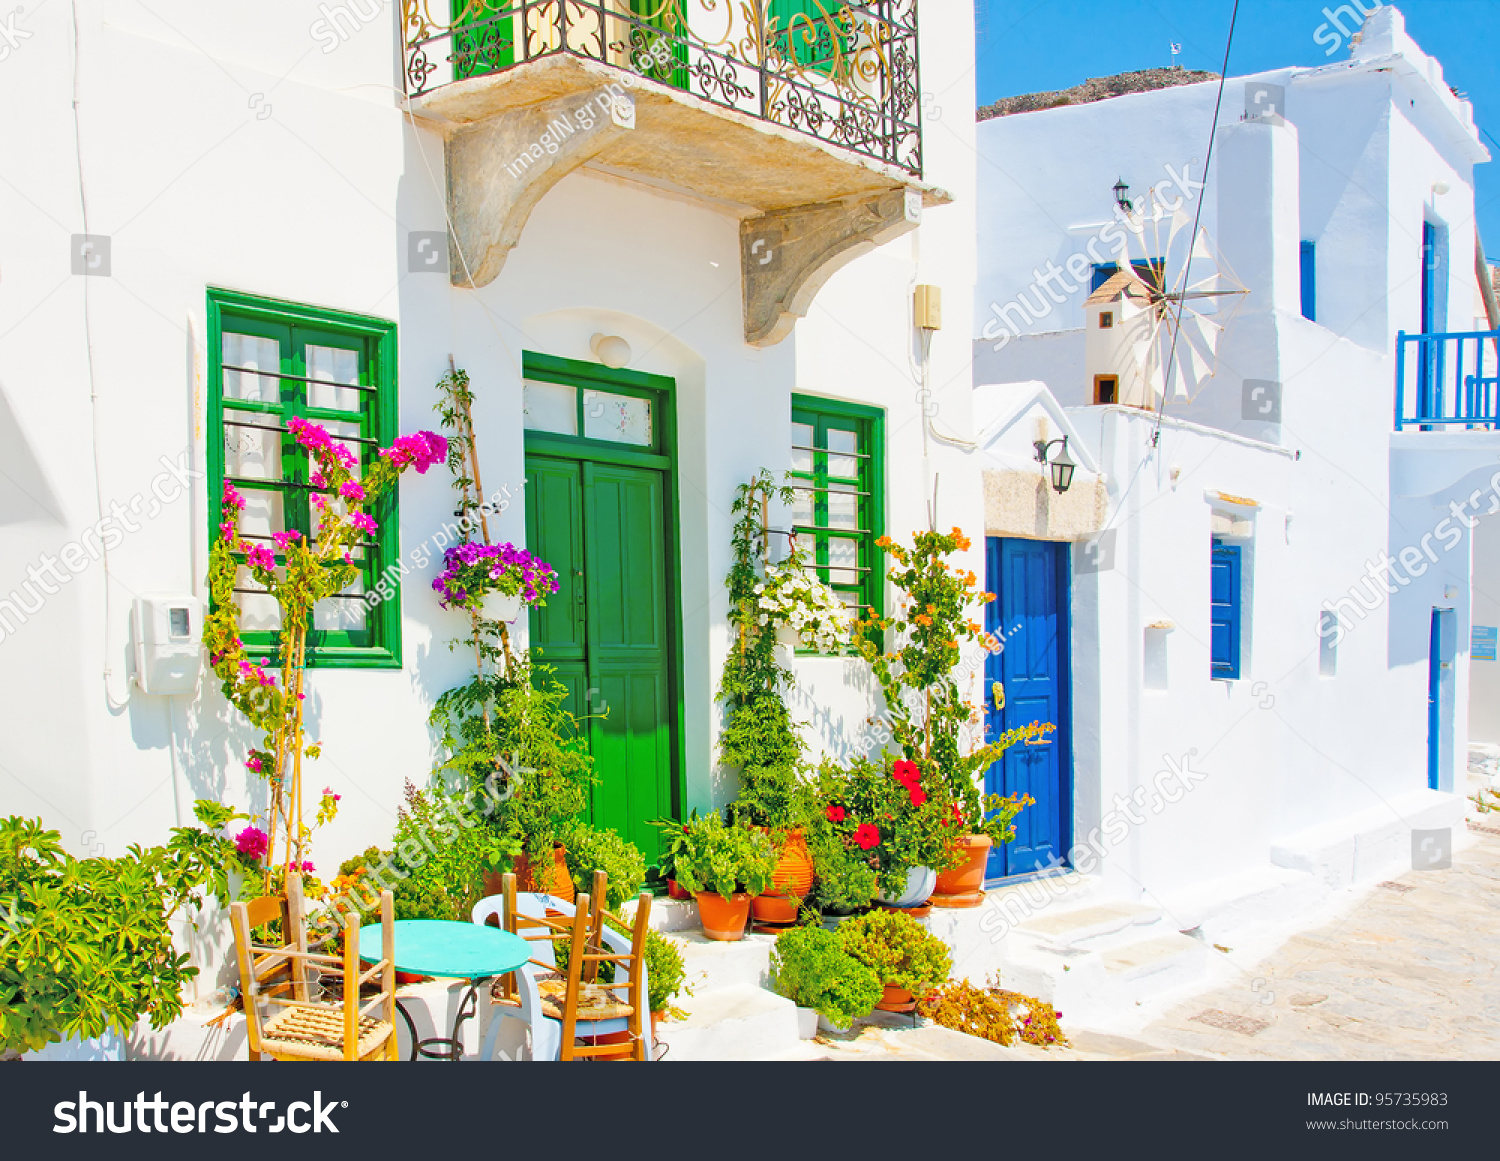 Old beautiful traditional house in chora the capital of amorgos island - Beautiful Stone Made Road With Old Traditional Houses In Chora The Capital Of Amorgos Island In Preview Save To A Lightbox